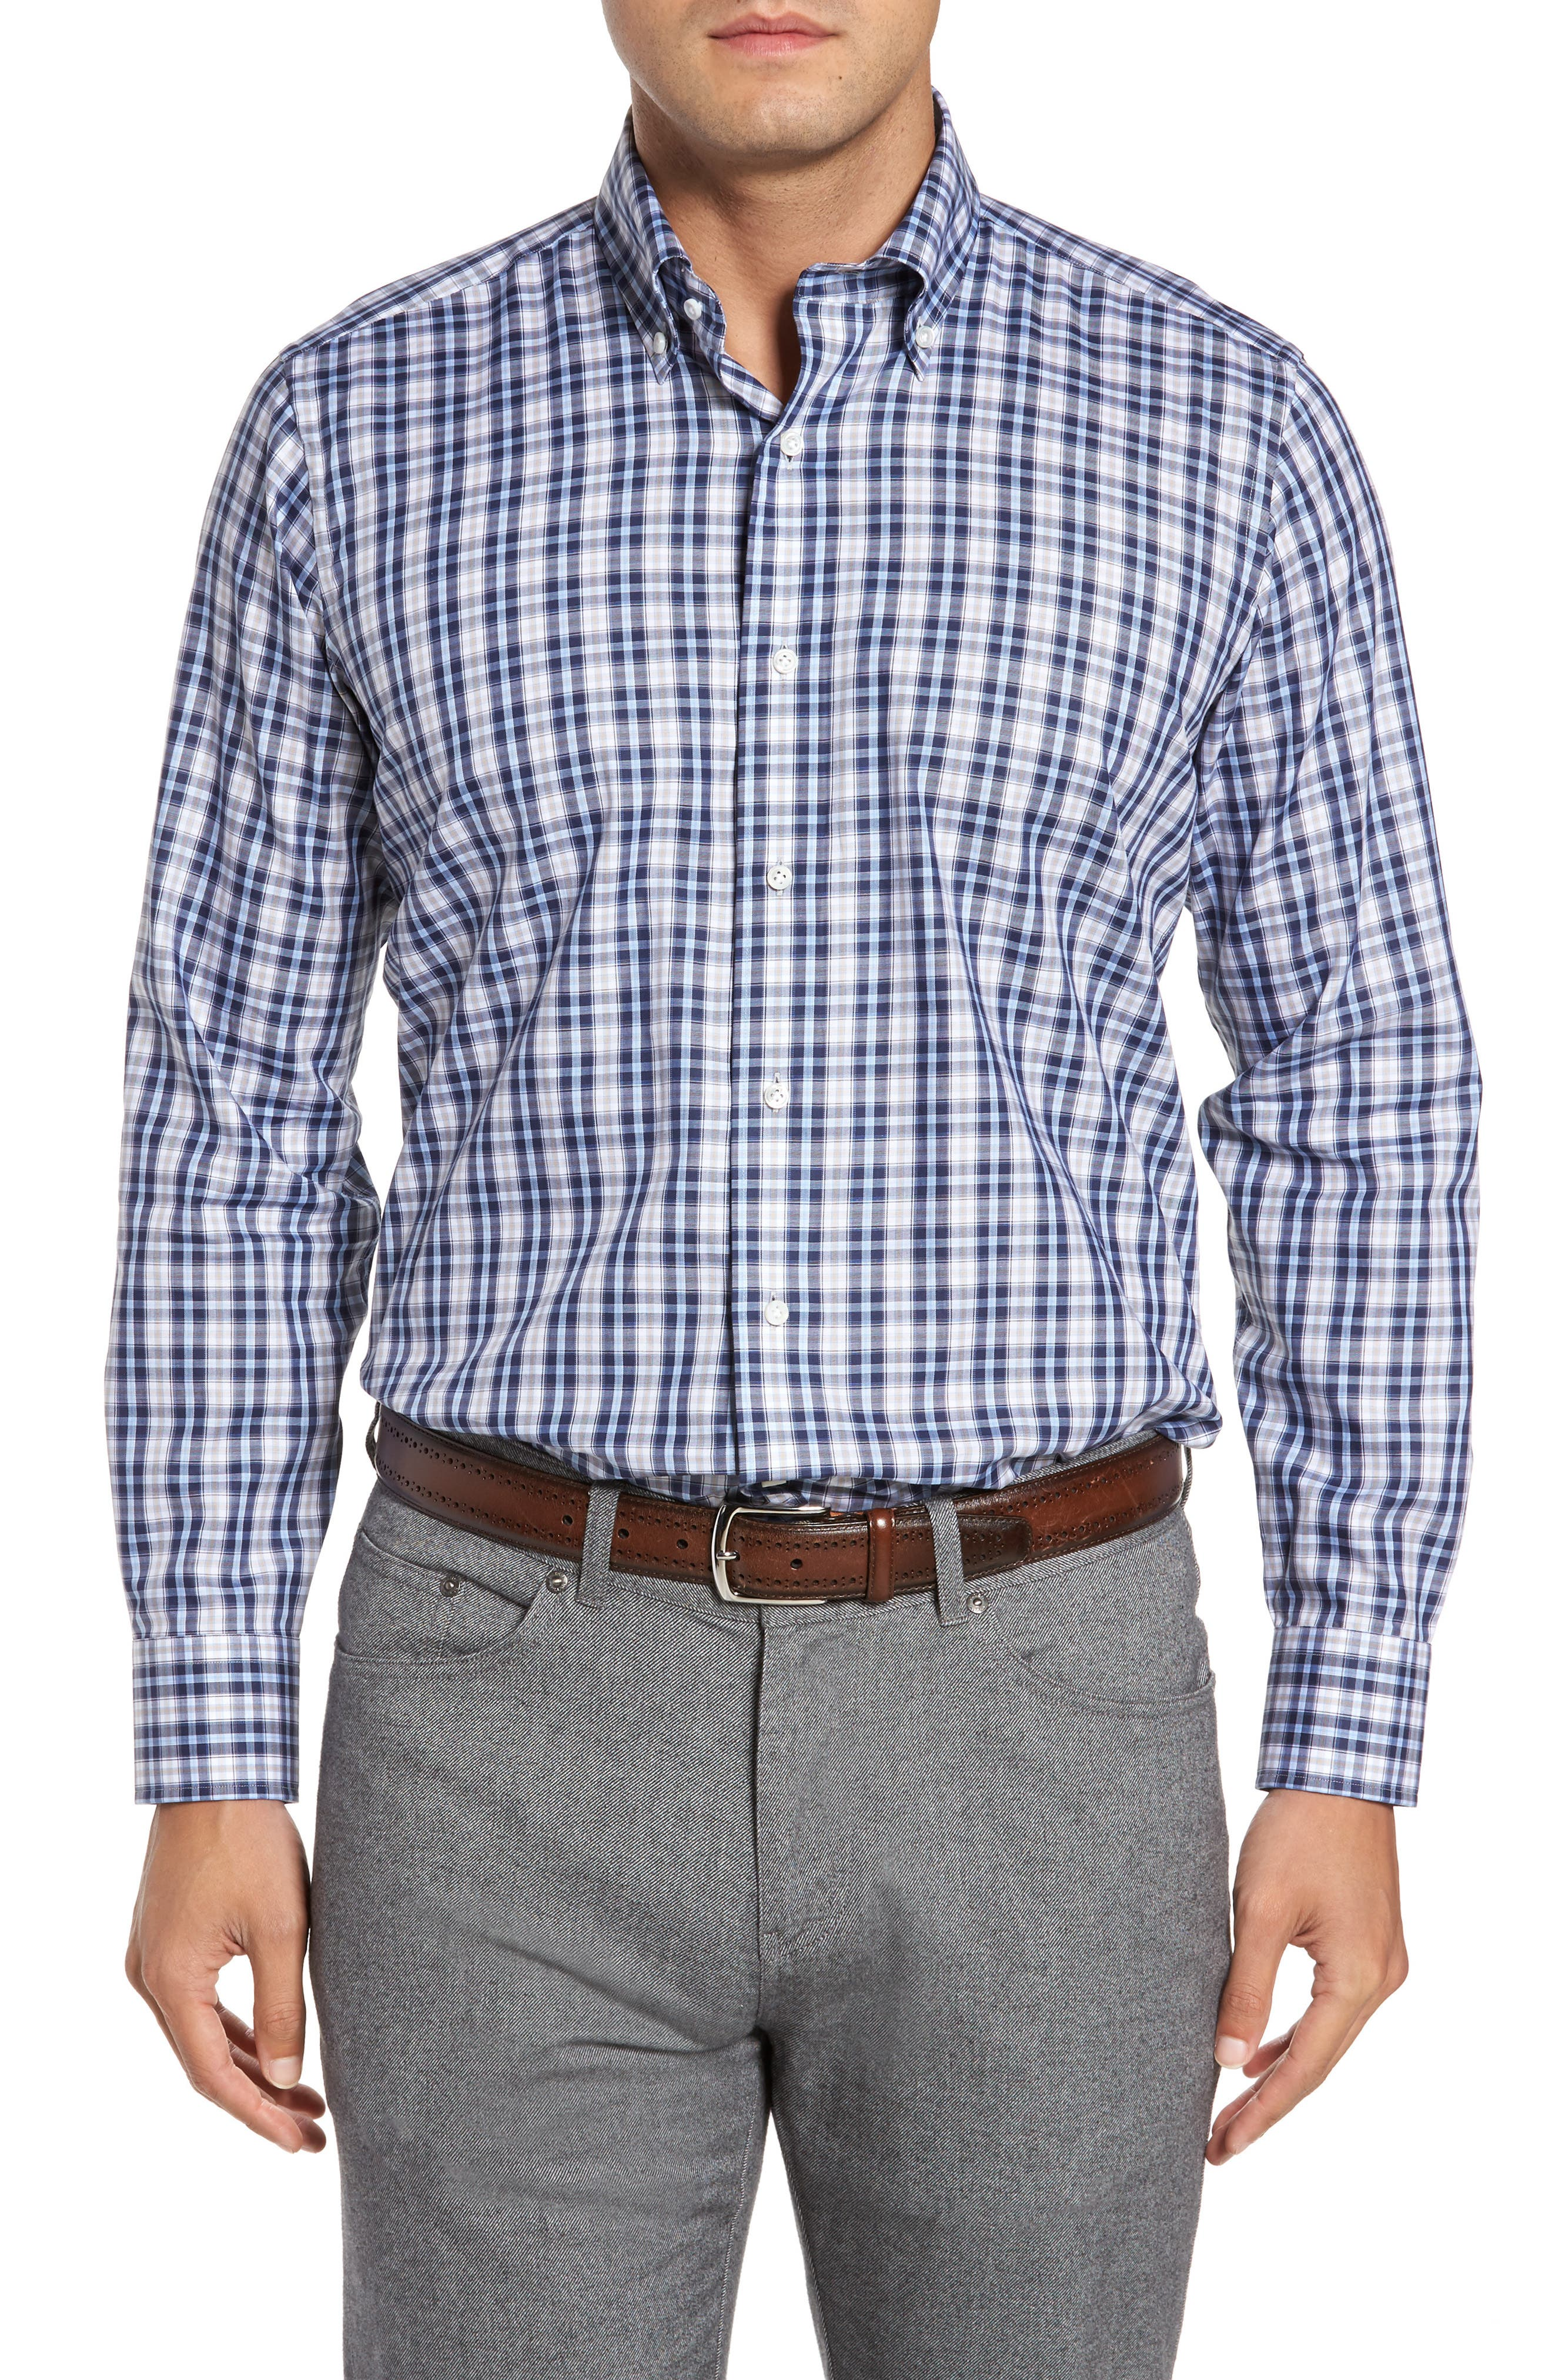 Alternate Image 1 Selected - Peter Millar Peyto Regular Fit Plaid Sport Shirt